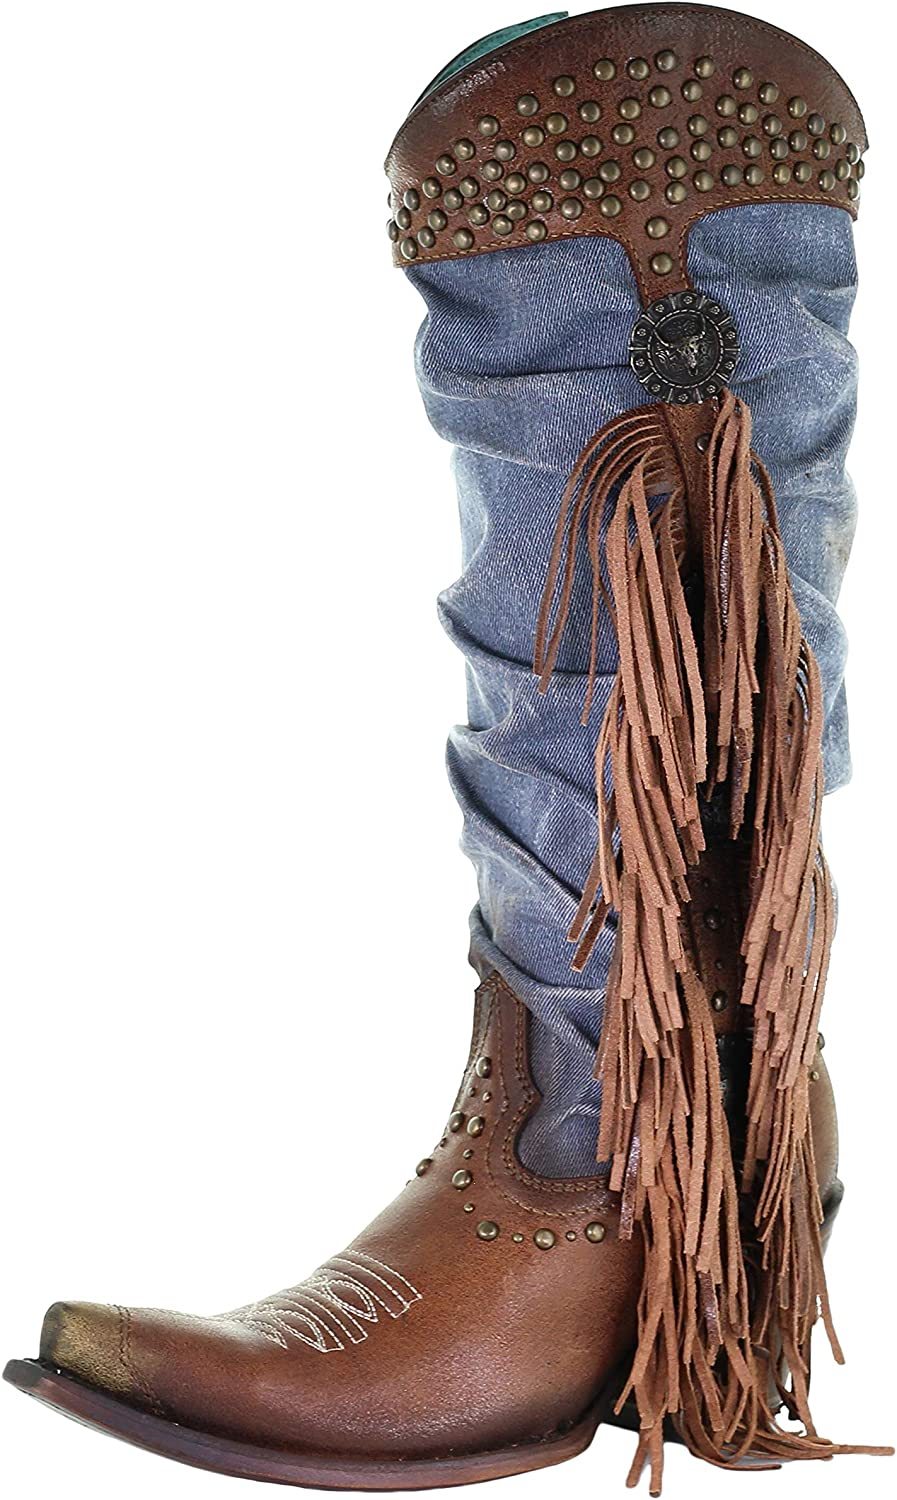 CORRAL C3550 Brown and Denim Slouchy Fringe Concho Studded Boots